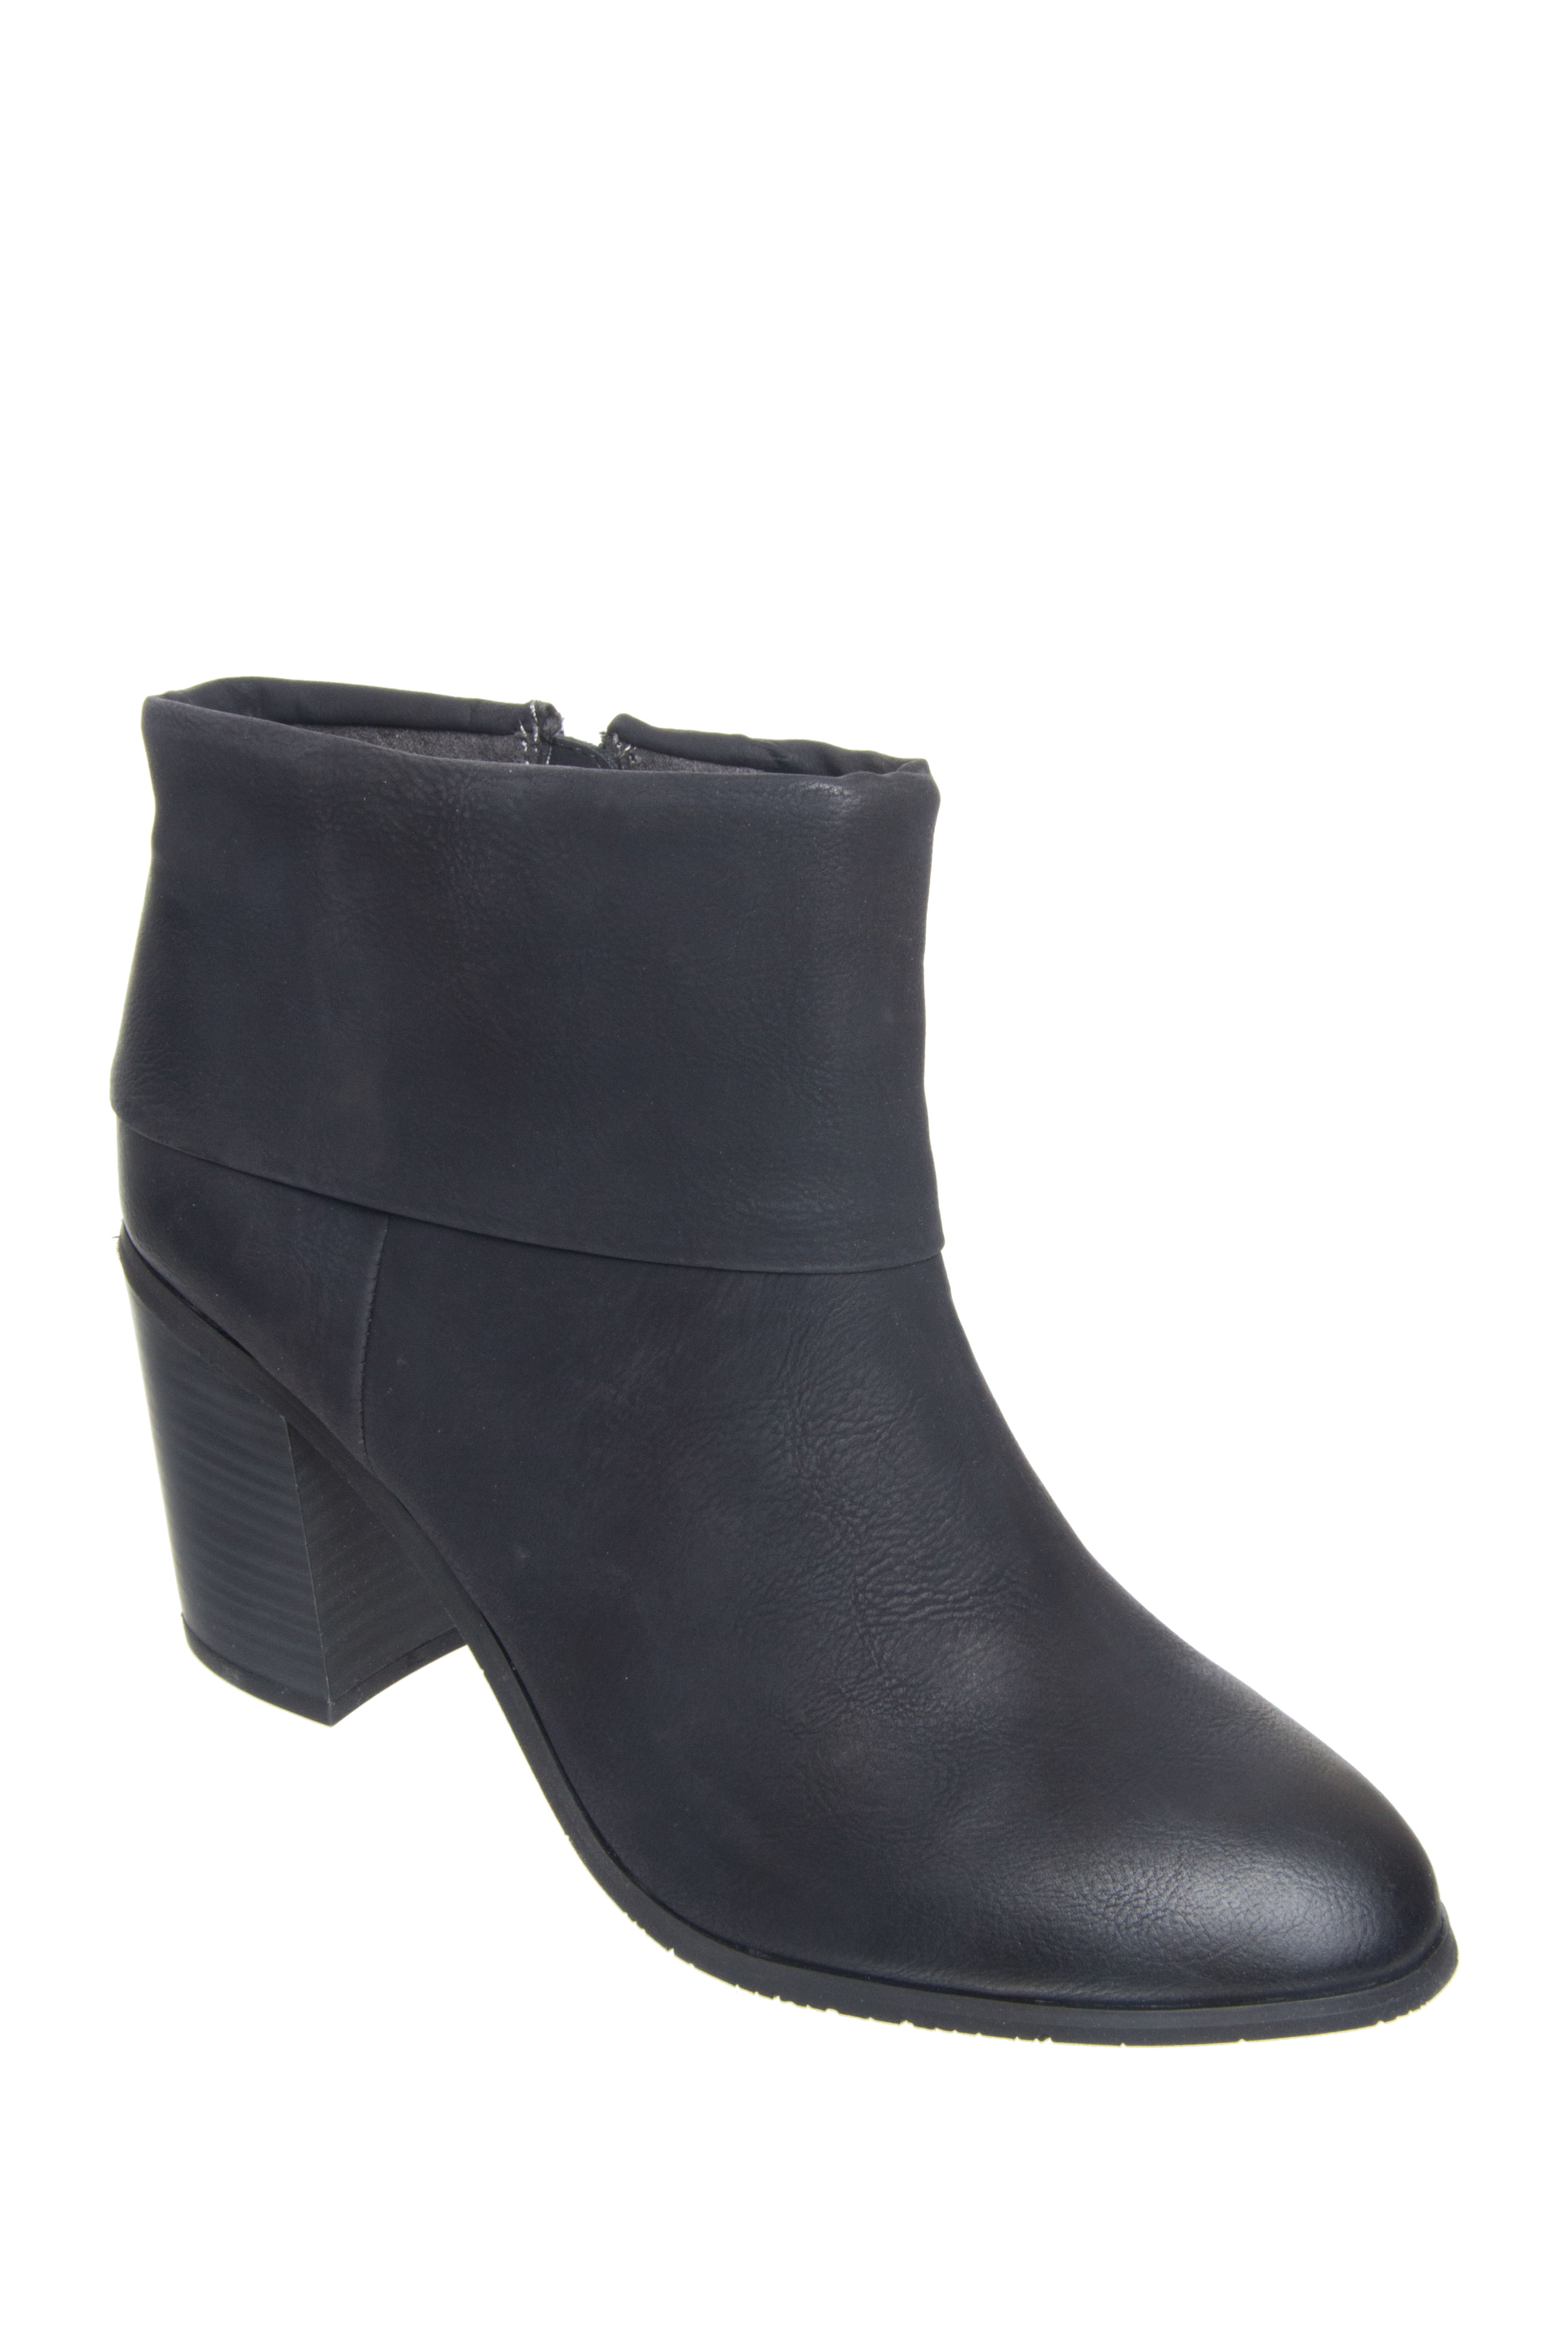 BC Footwear Band II Cuffed Ankle Booties - Black